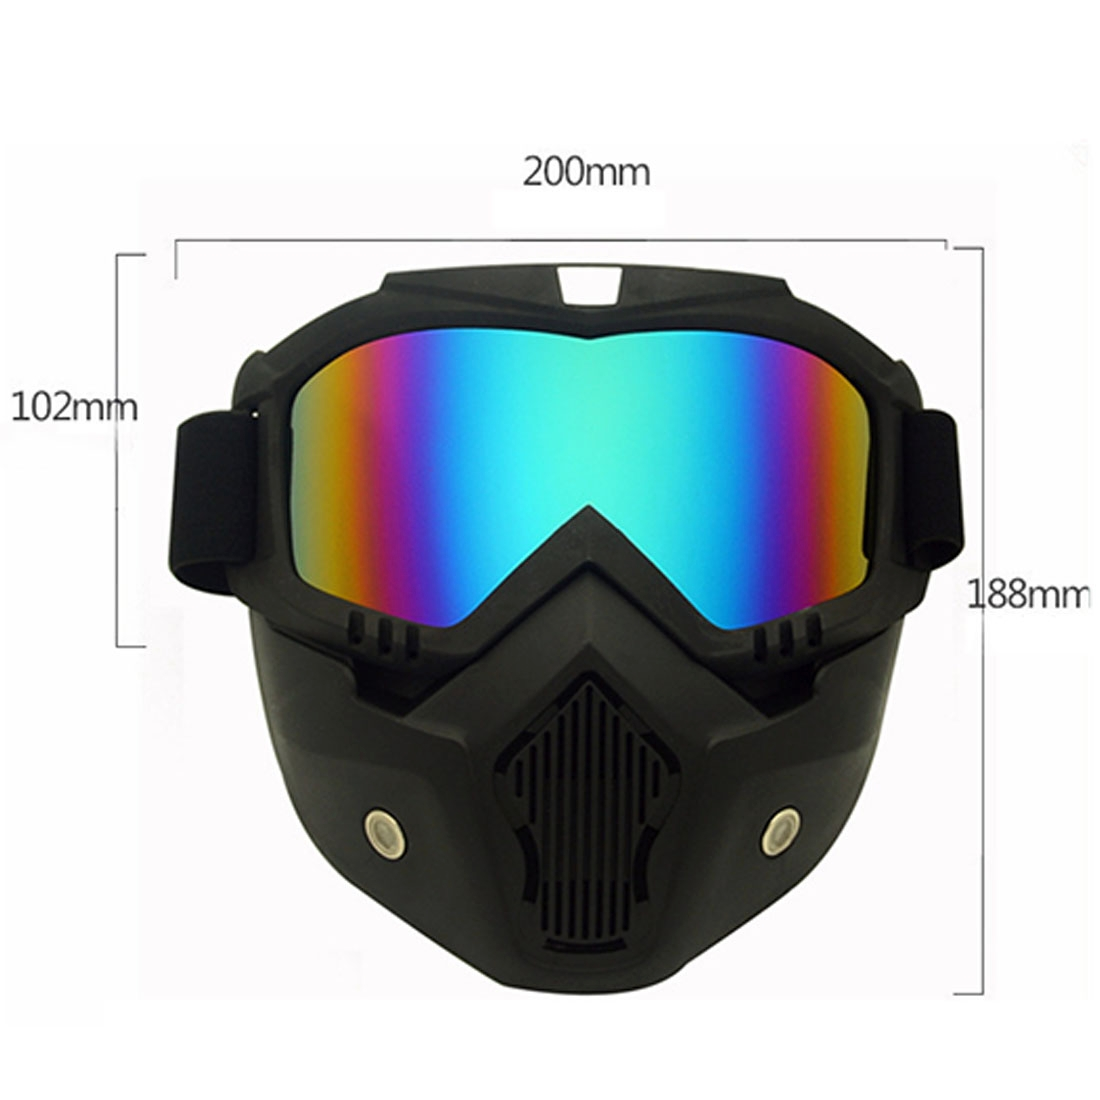 Motorcycle Off-road Helmet Mask Detachable Windproof Goggles Glasses (Silver)